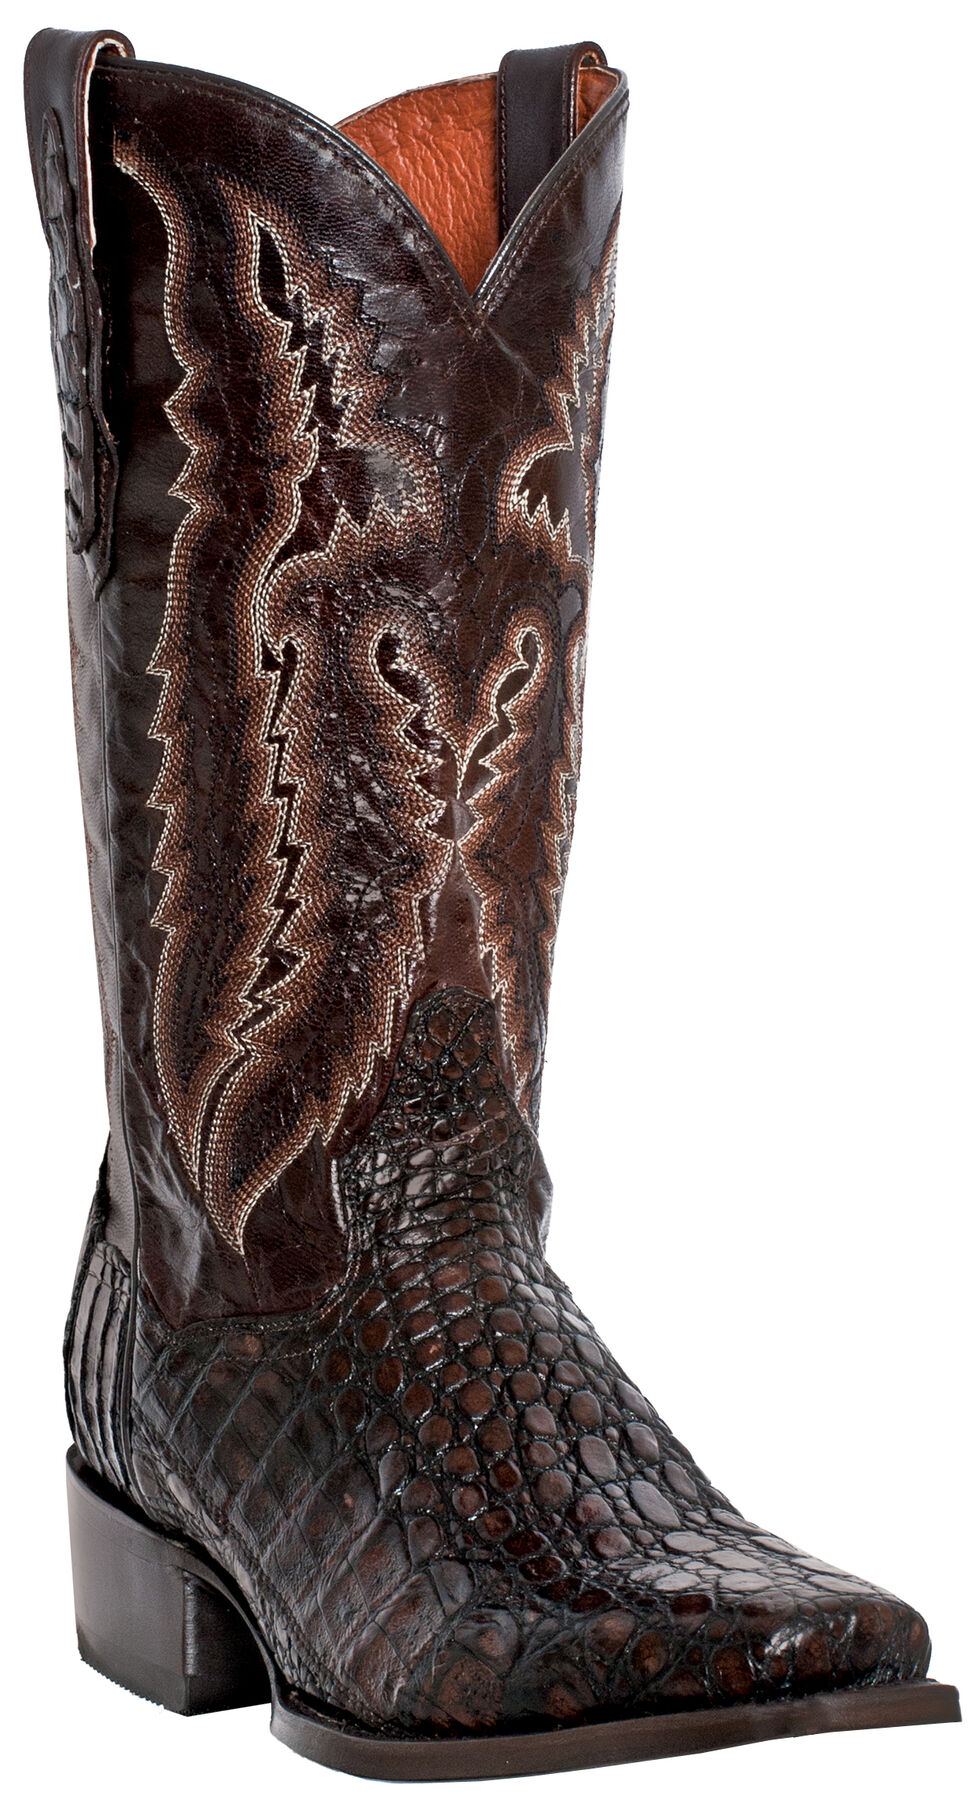 Dan Post Lagoon Caiman Cowboy Boots - Square Toe, Black, hi-res